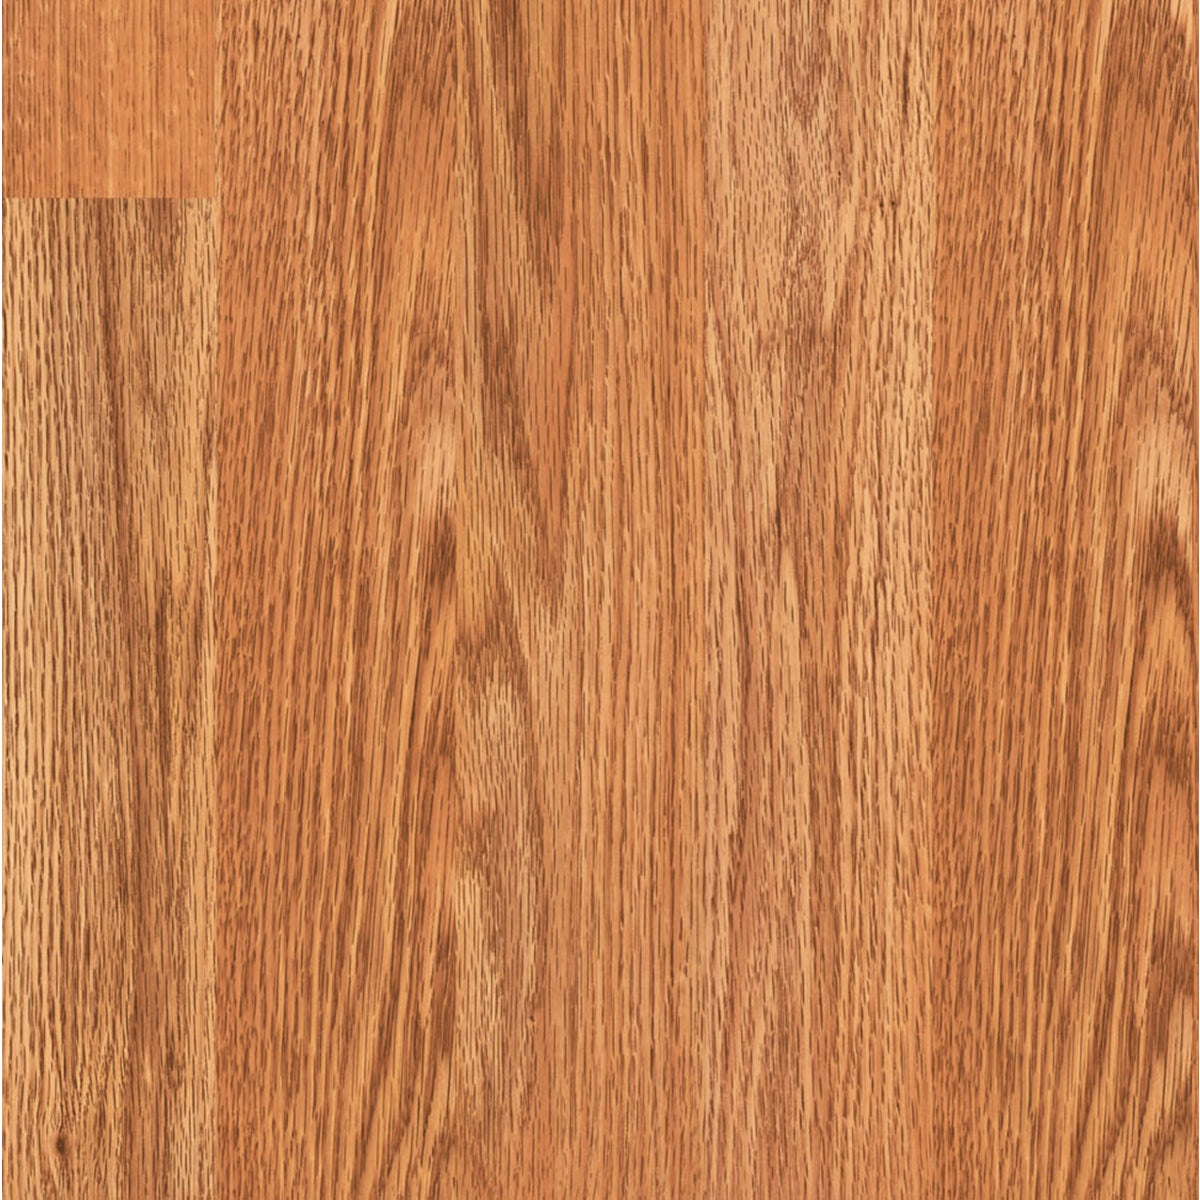 ROYAL OAK LAMINATE FLOOR - 258A by Balterio U S Inc